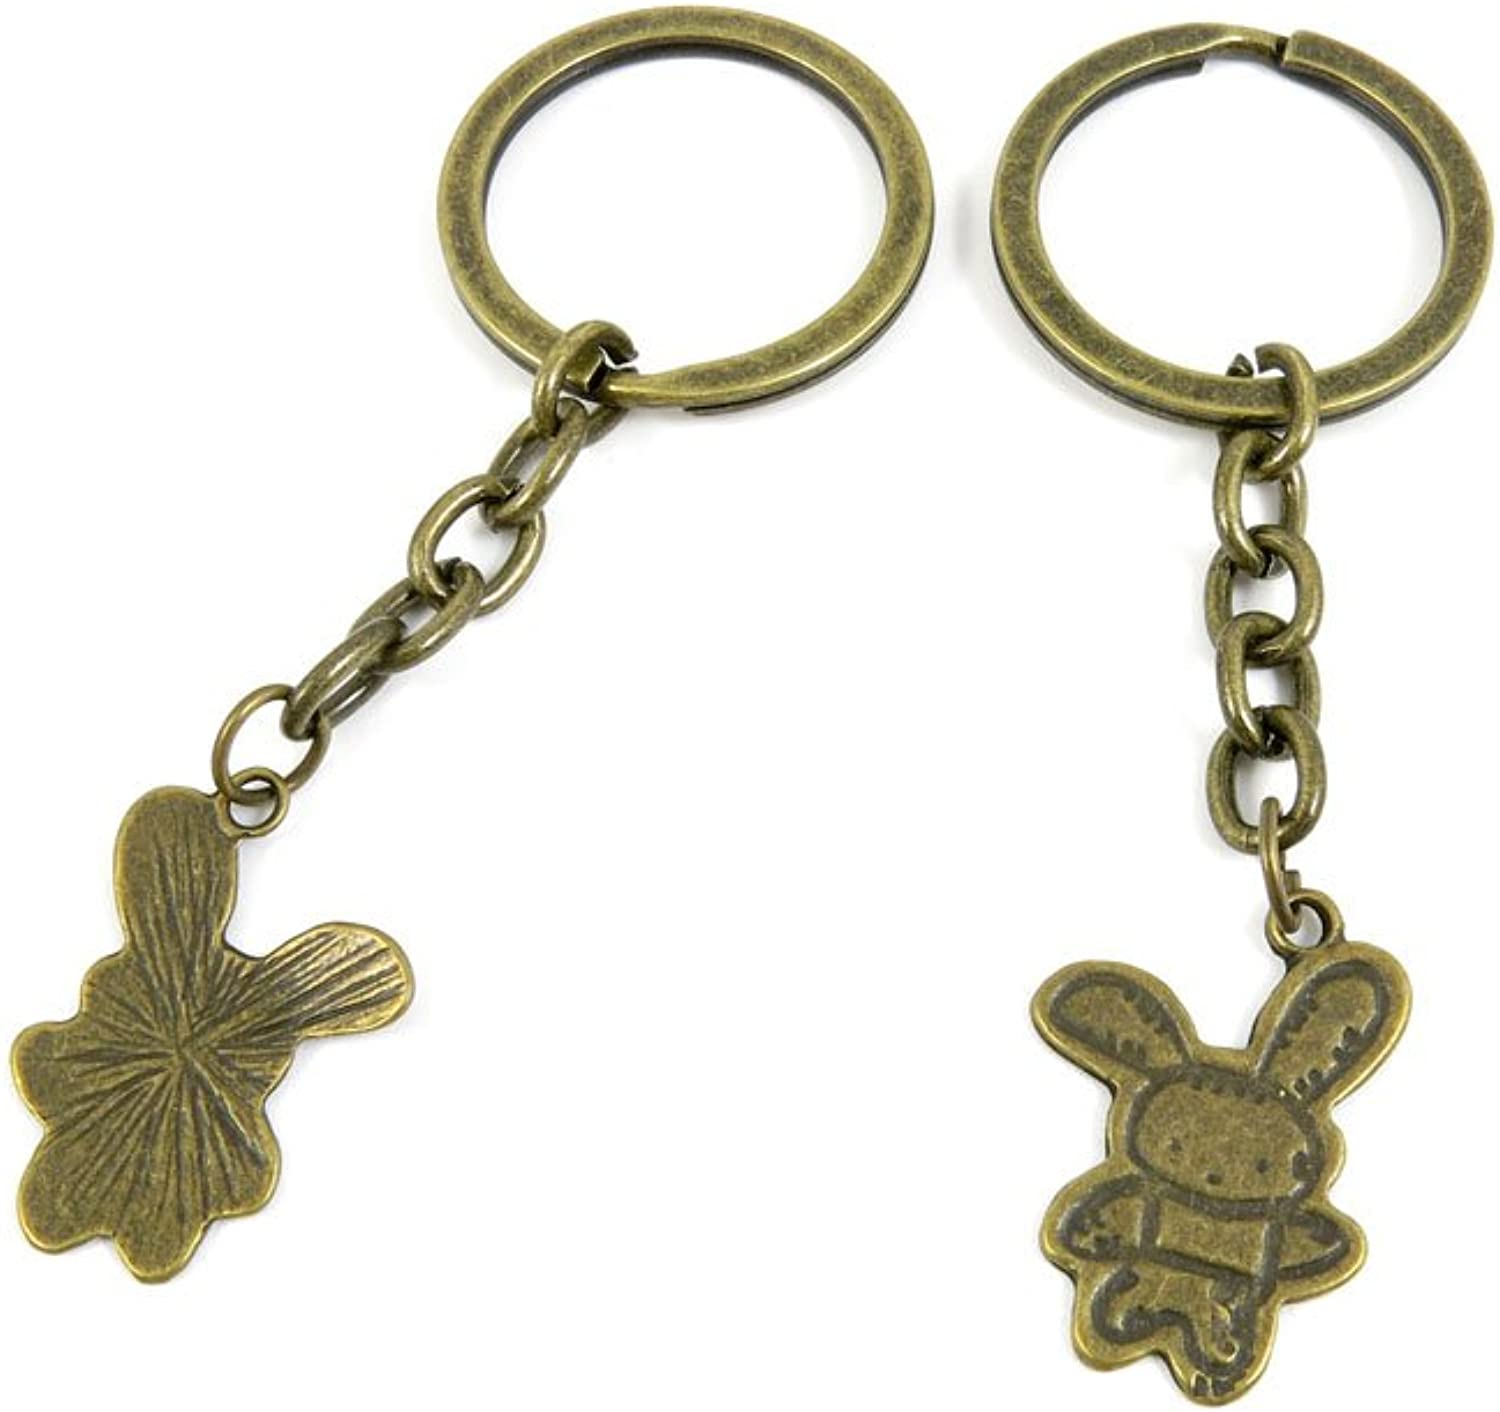 100 PCS Keyrings Keychains Key Ring Chains Tags Jewelry Findings Clasps Buckles Supplies Z6FT4 Rabbit Signs